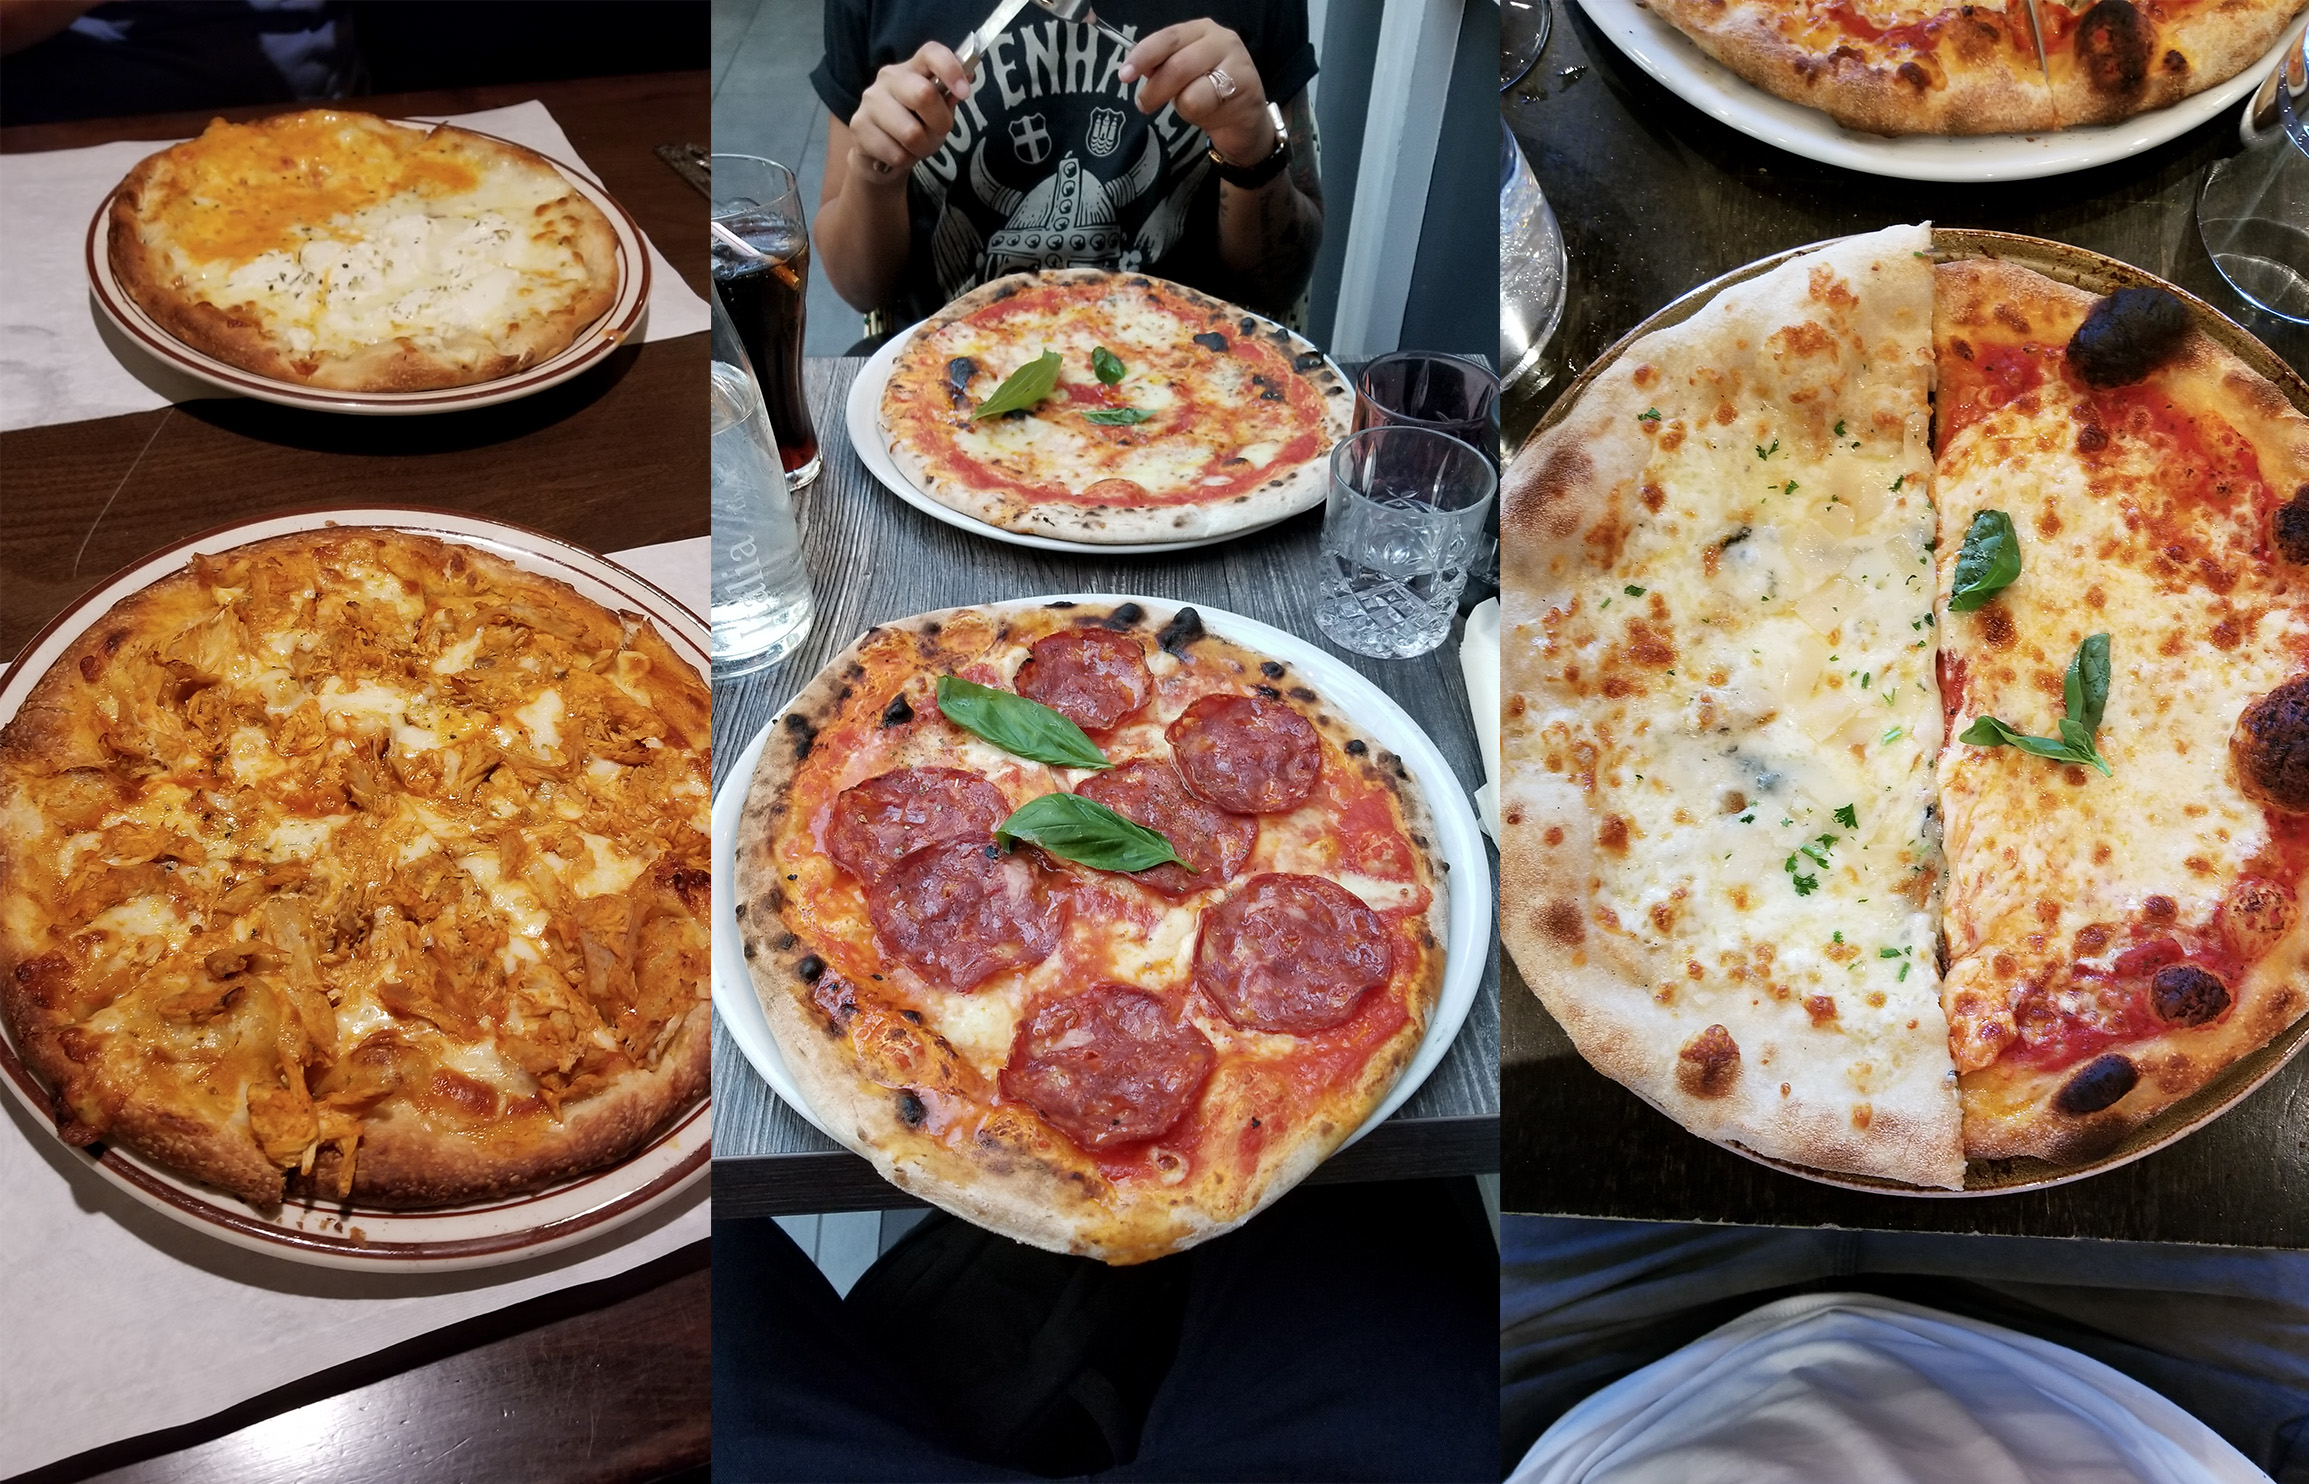 Featured pizzas are Buffalo Chicken from Staten Island, Pizza with hot Salami in Copenhagen, and half Quatro Formagio and half margarita from Manhattan.